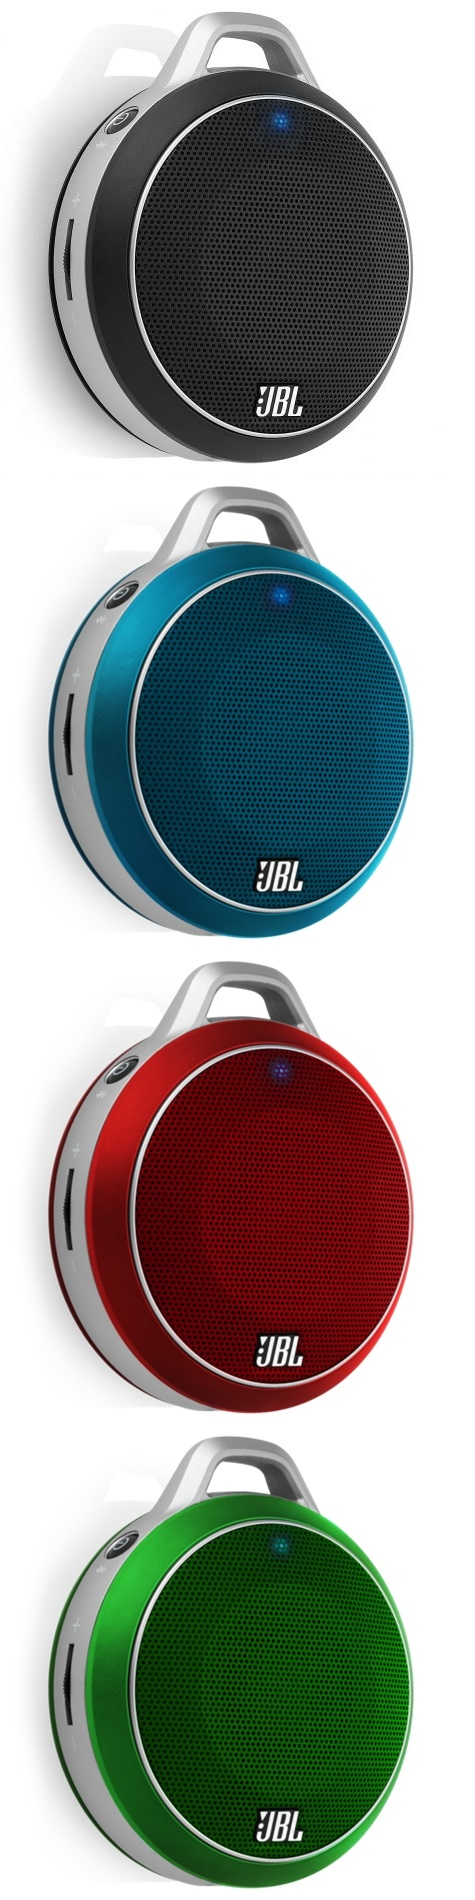 Jbl Micro Wireless Portable Speakers An Ultra Portable Bluetooth Speaker With With Images Bluetooth Speakers Portable Wireless Speakers Bluetooth Cool Bluetooth Speakers